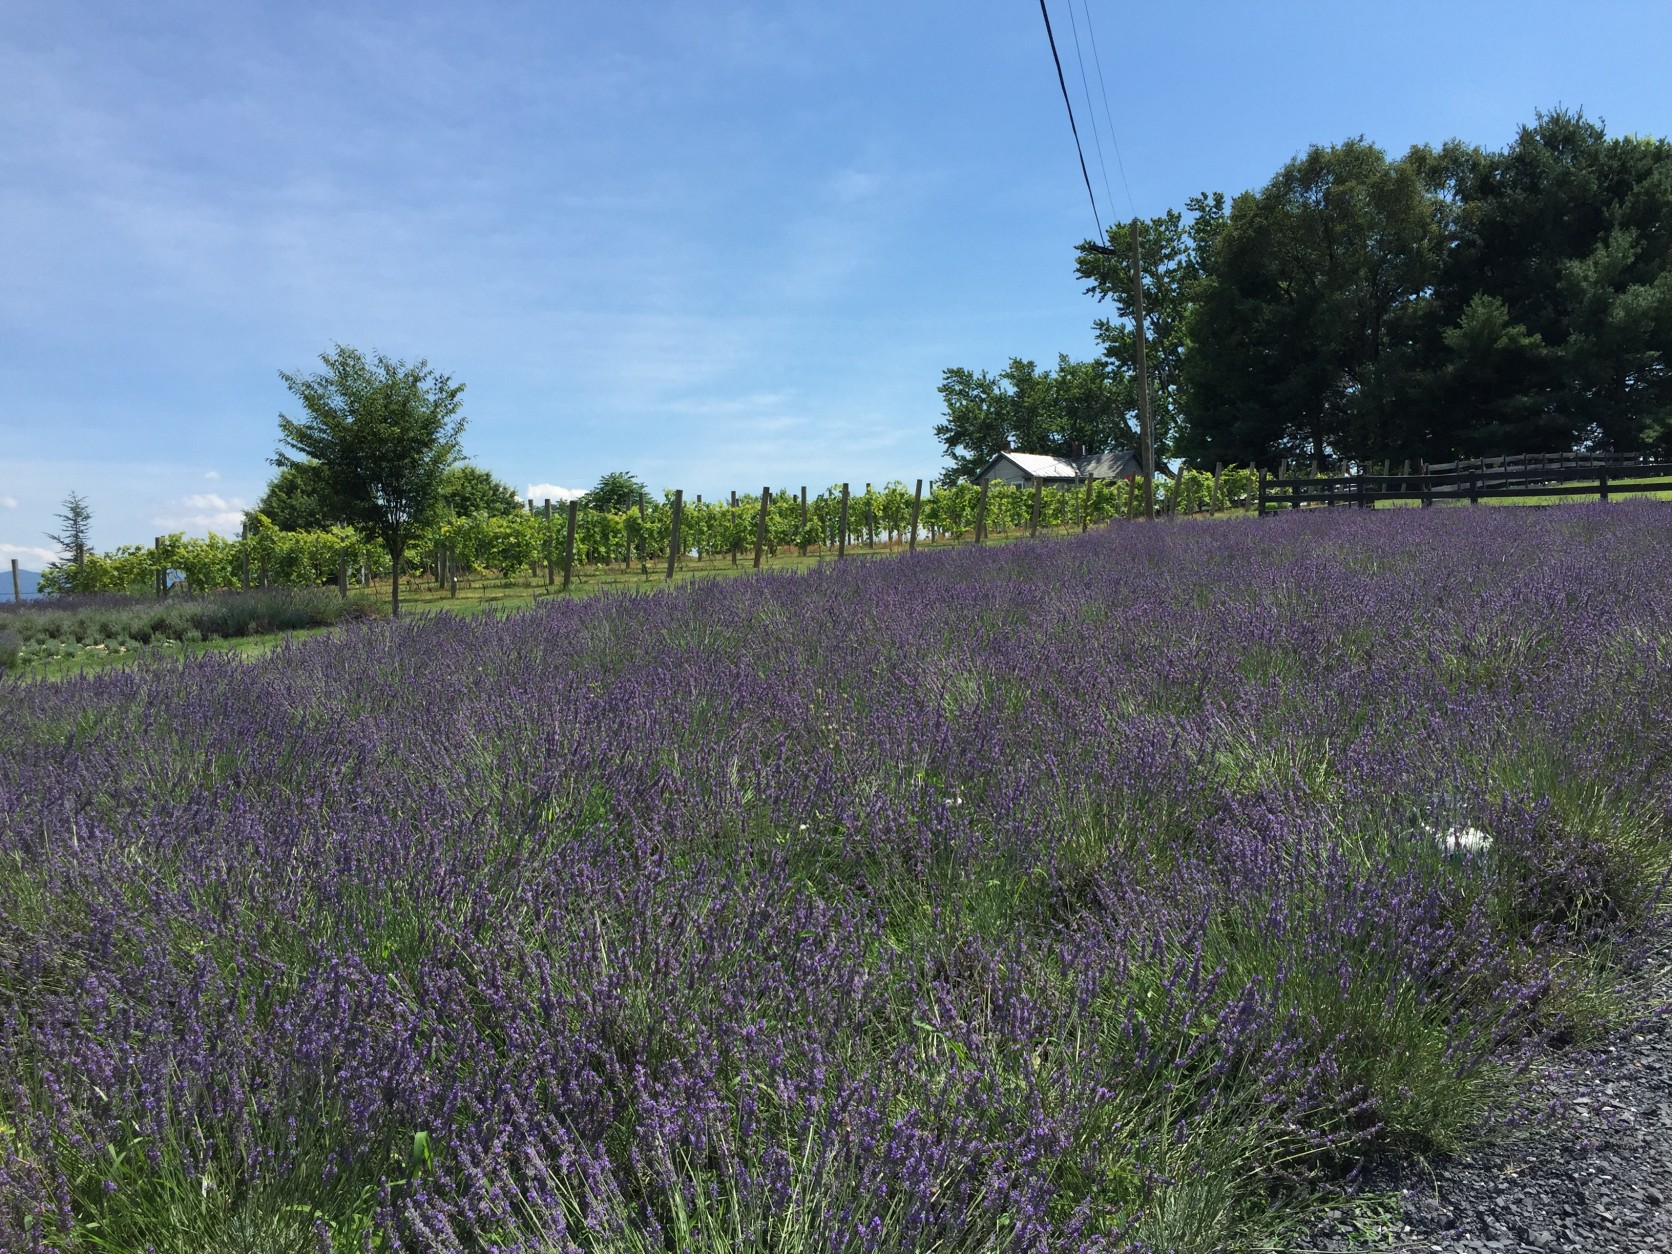 Need to unwind? Relax and visit a lavender farm | WTOP